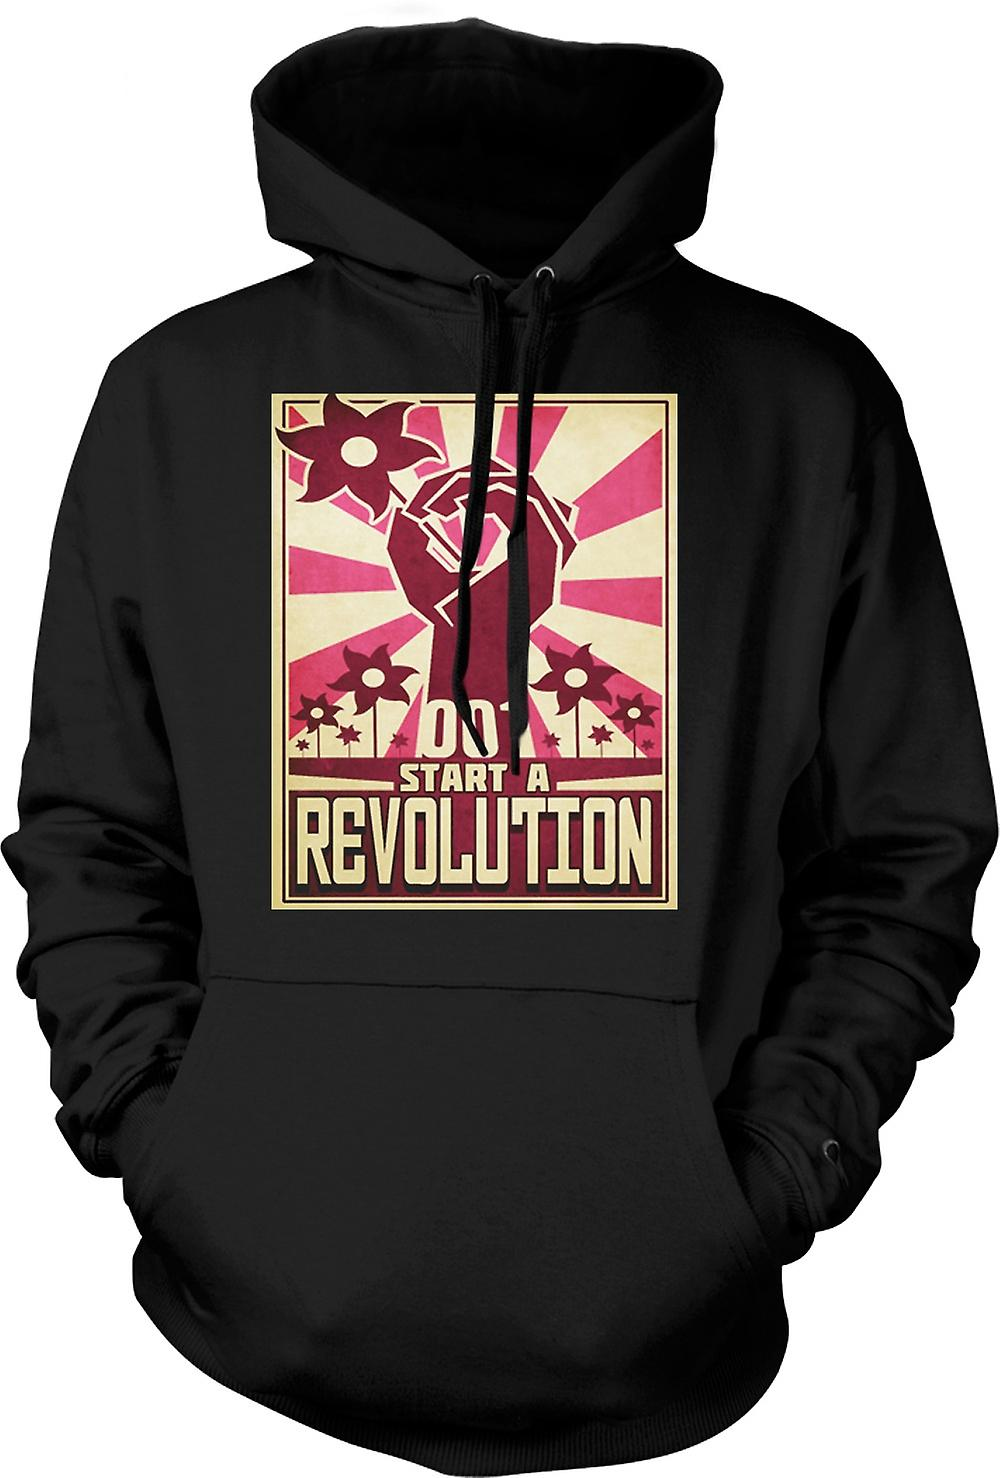 Mens Hoodie - Start A Revolution - Cool Design